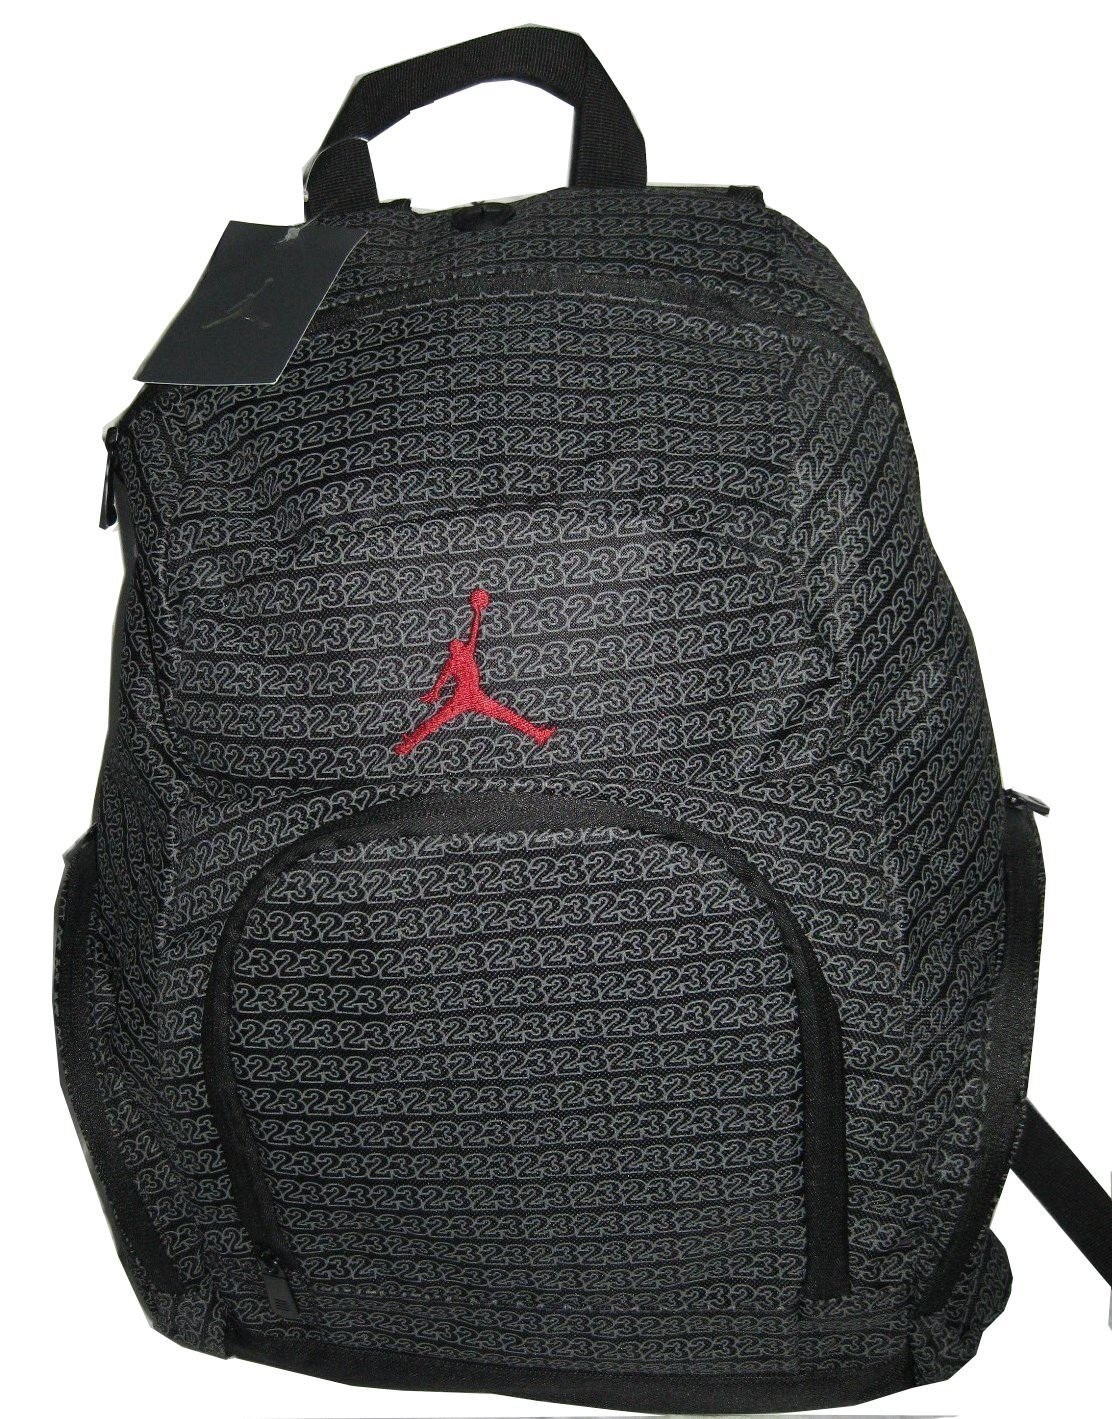 2e806c5875e942 Buy Nike Jordan Jumpman23 Backpack in Cheap Price on Alibaba.com